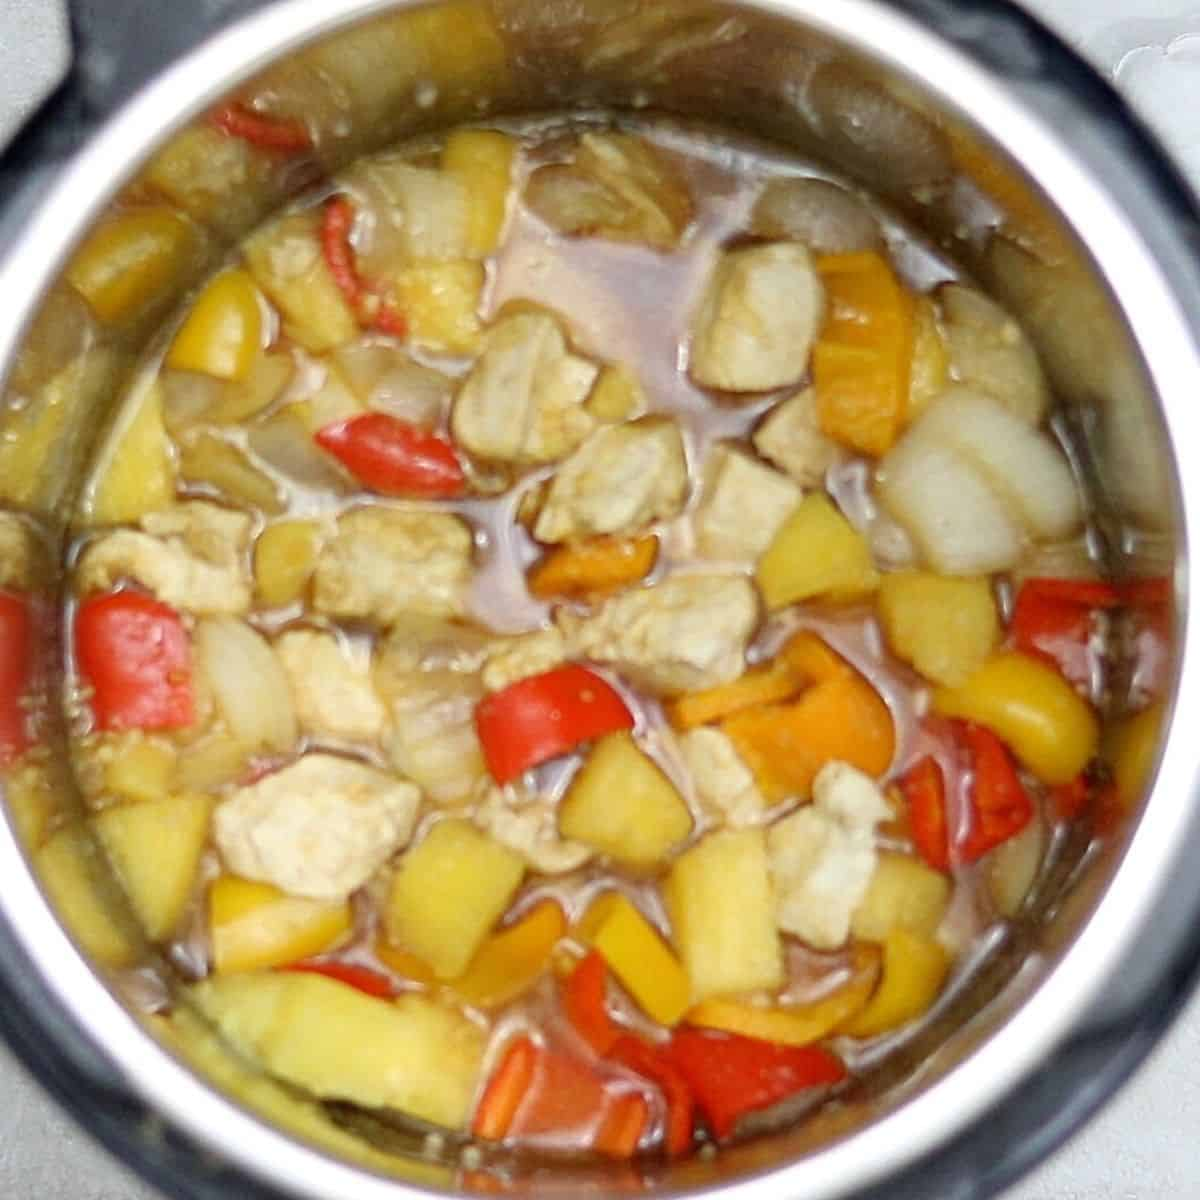 Cooked sweet and sour chicken inside inner pot.